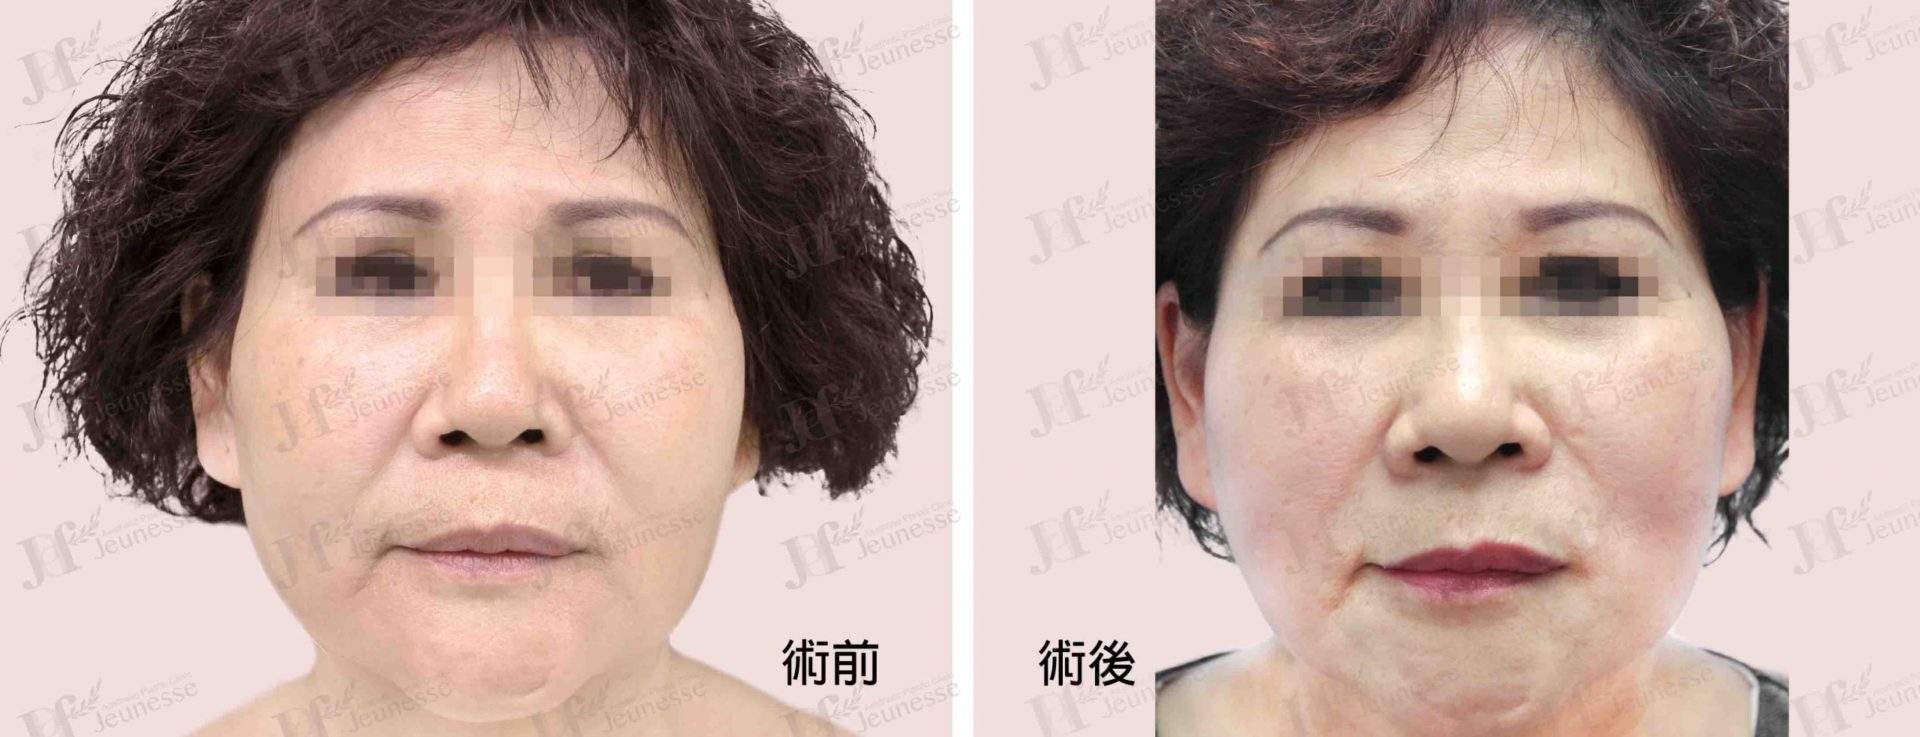 Midface lifting case 2 正面-浮水印